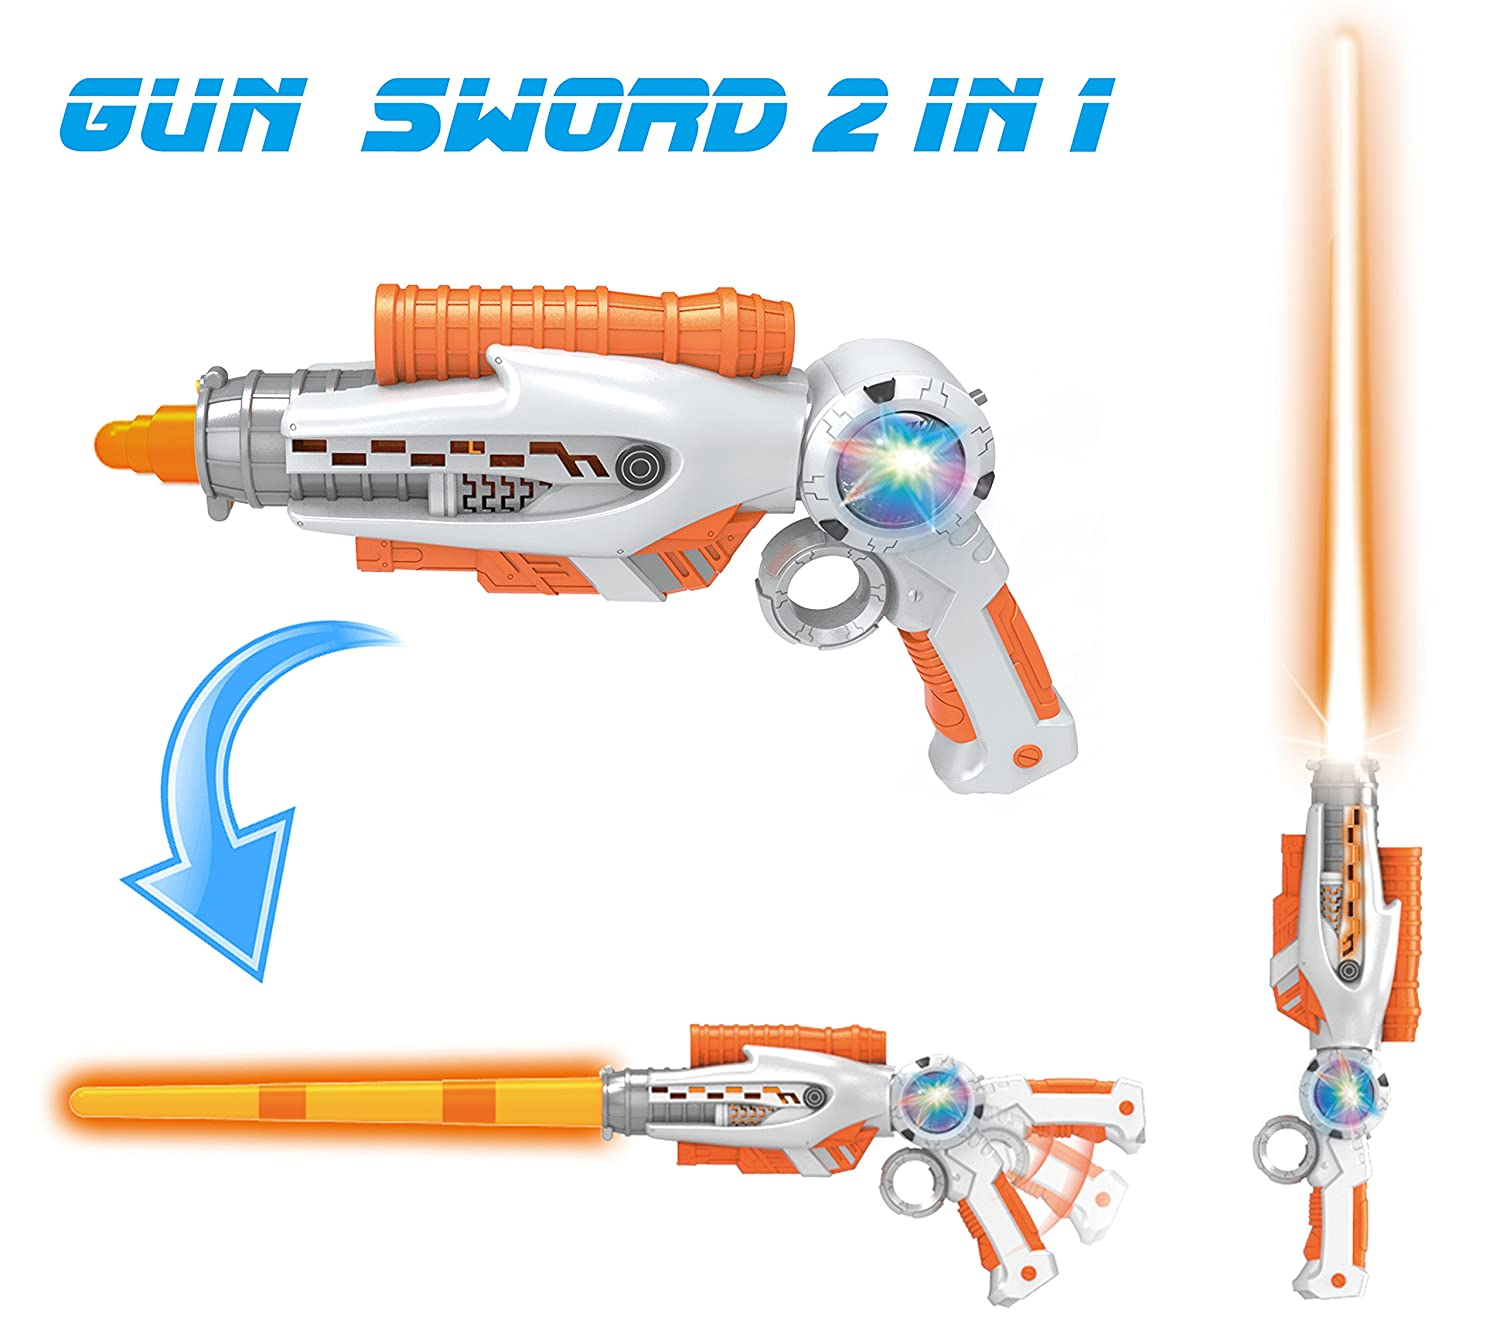 2-in-1 Transforming Gun Sword Light Up Saber Space Blaster Weapon for Kids with Lights & Sounds Liberty Imports